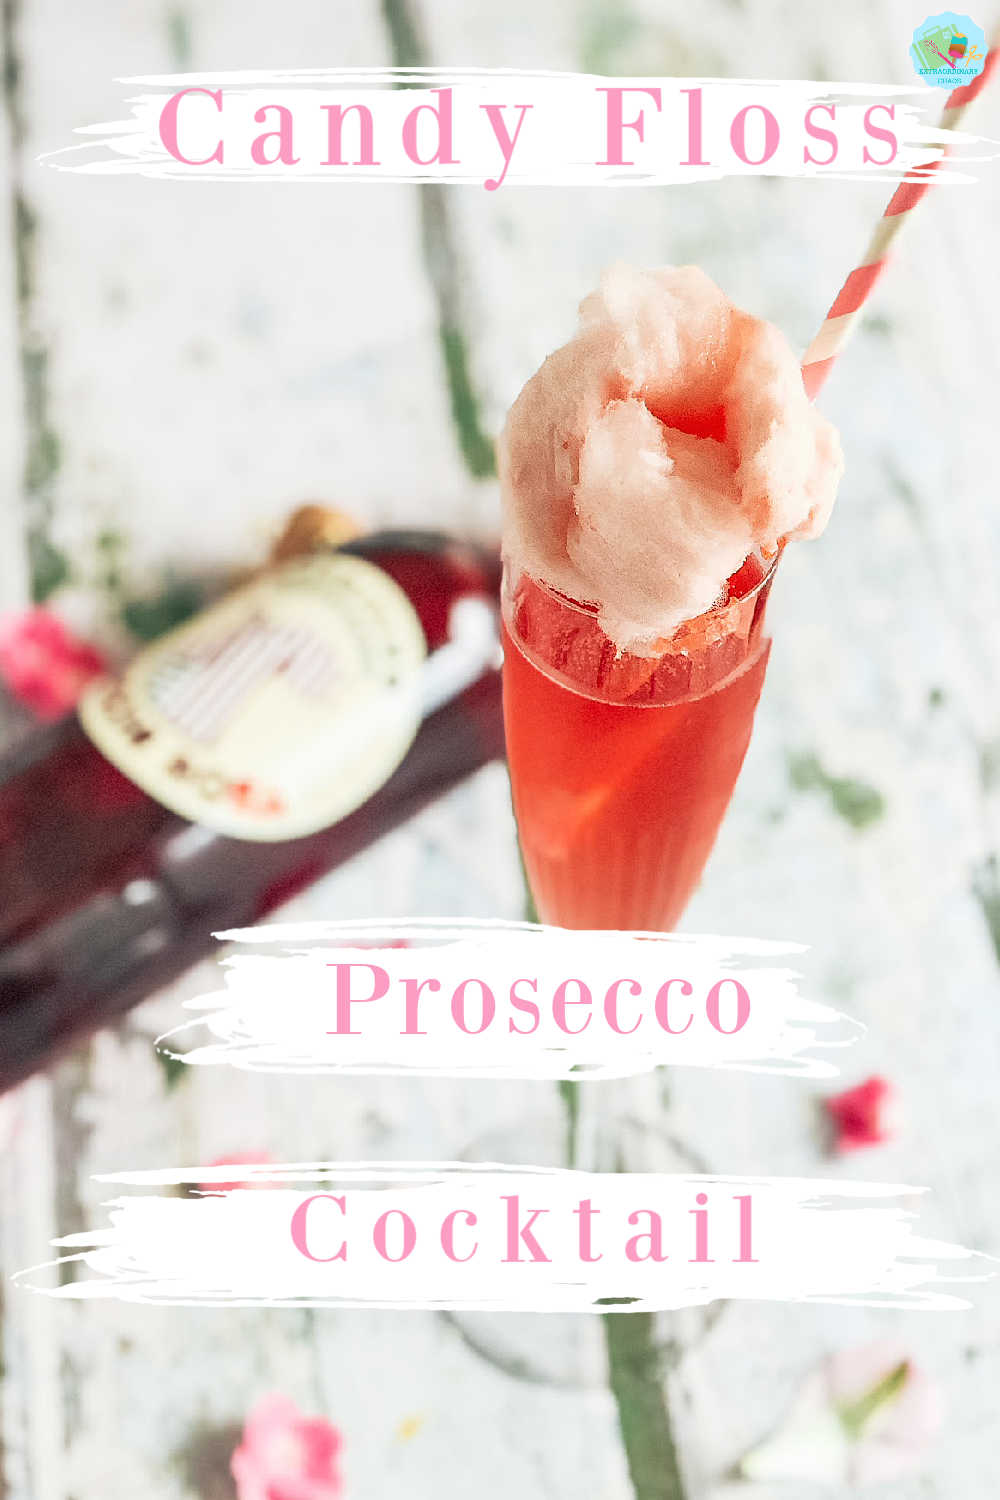 How to make a candy floss and Prosecco pink cocktail recipe